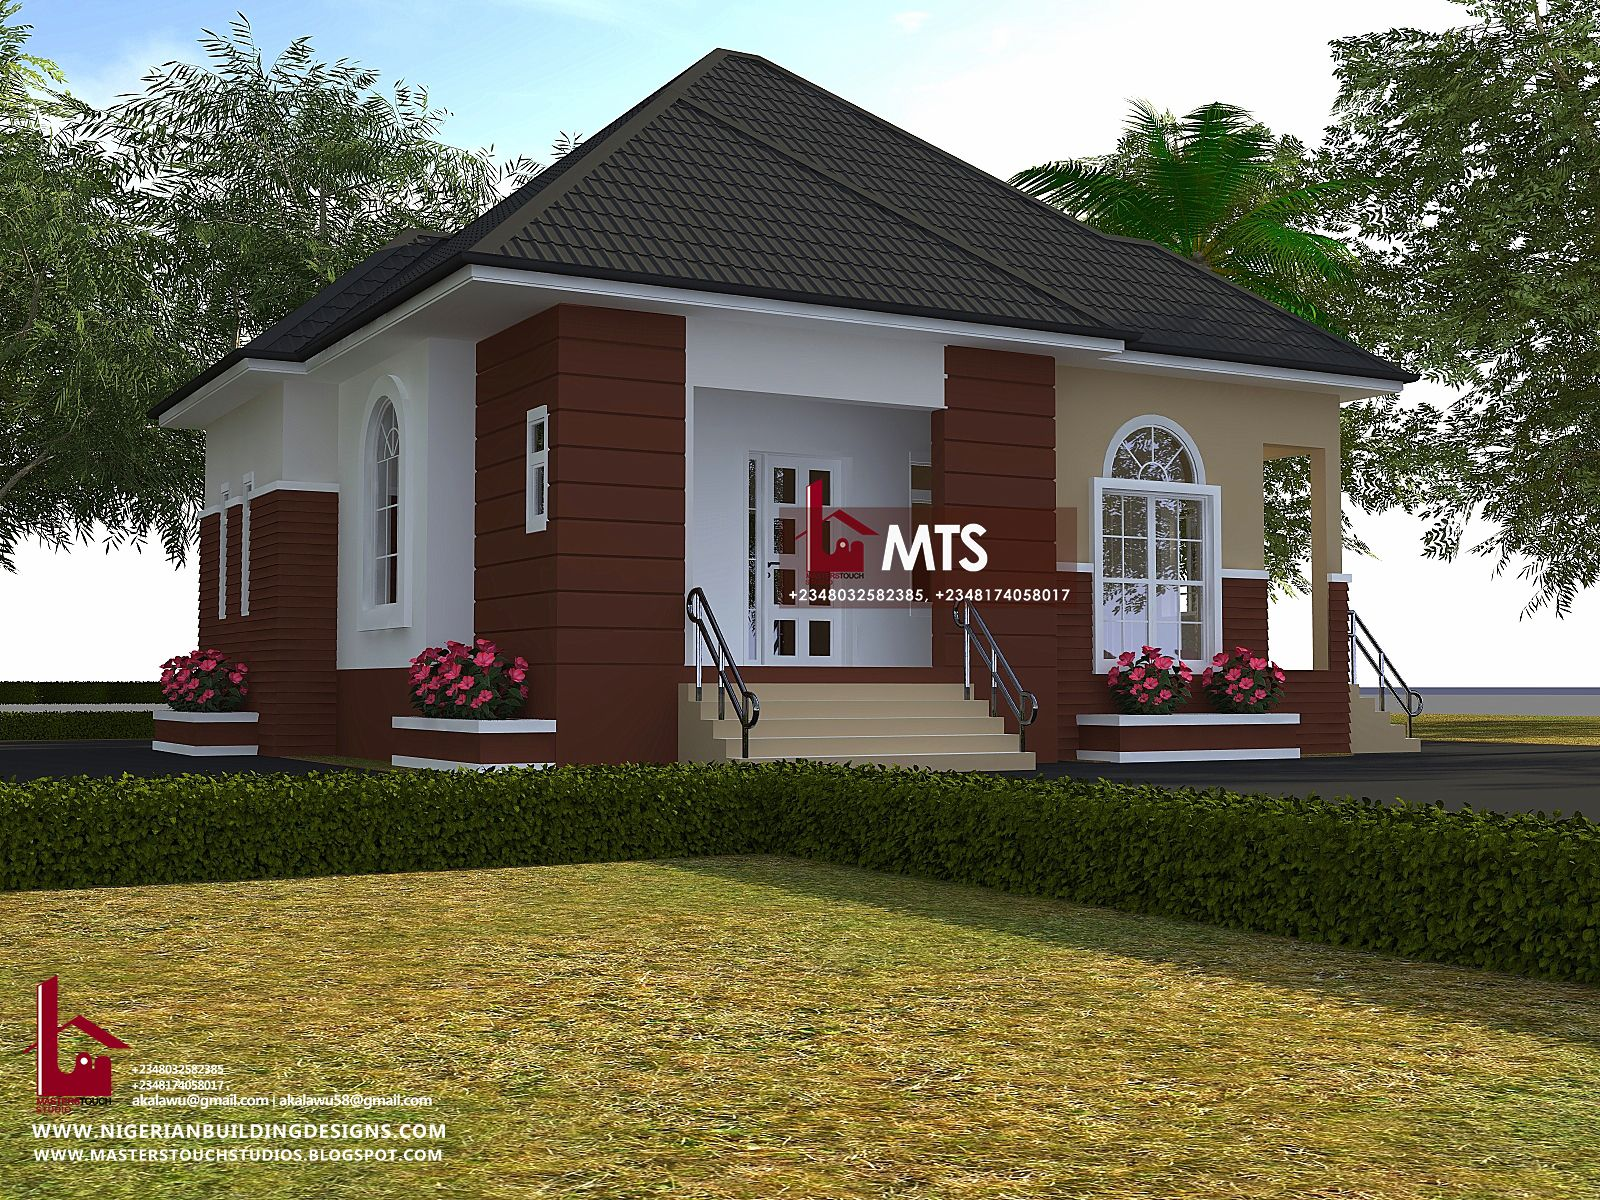 2 Bedroom Bungalow Rf 2002 In 2020 Bungalow Design Bungalow House Design Duplex House Design